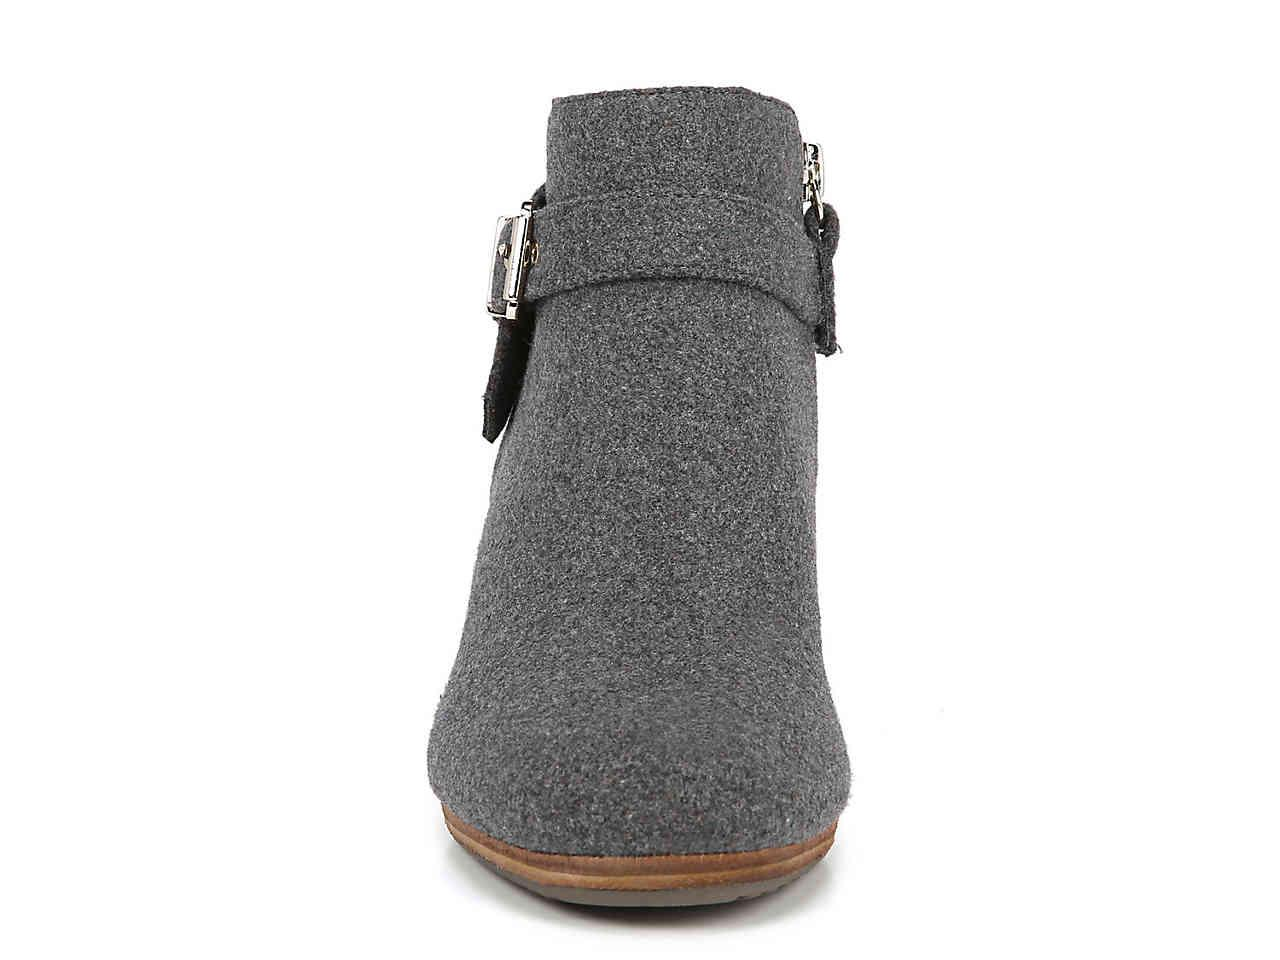 Dr. Scholls Synthetic Darcy Wedge